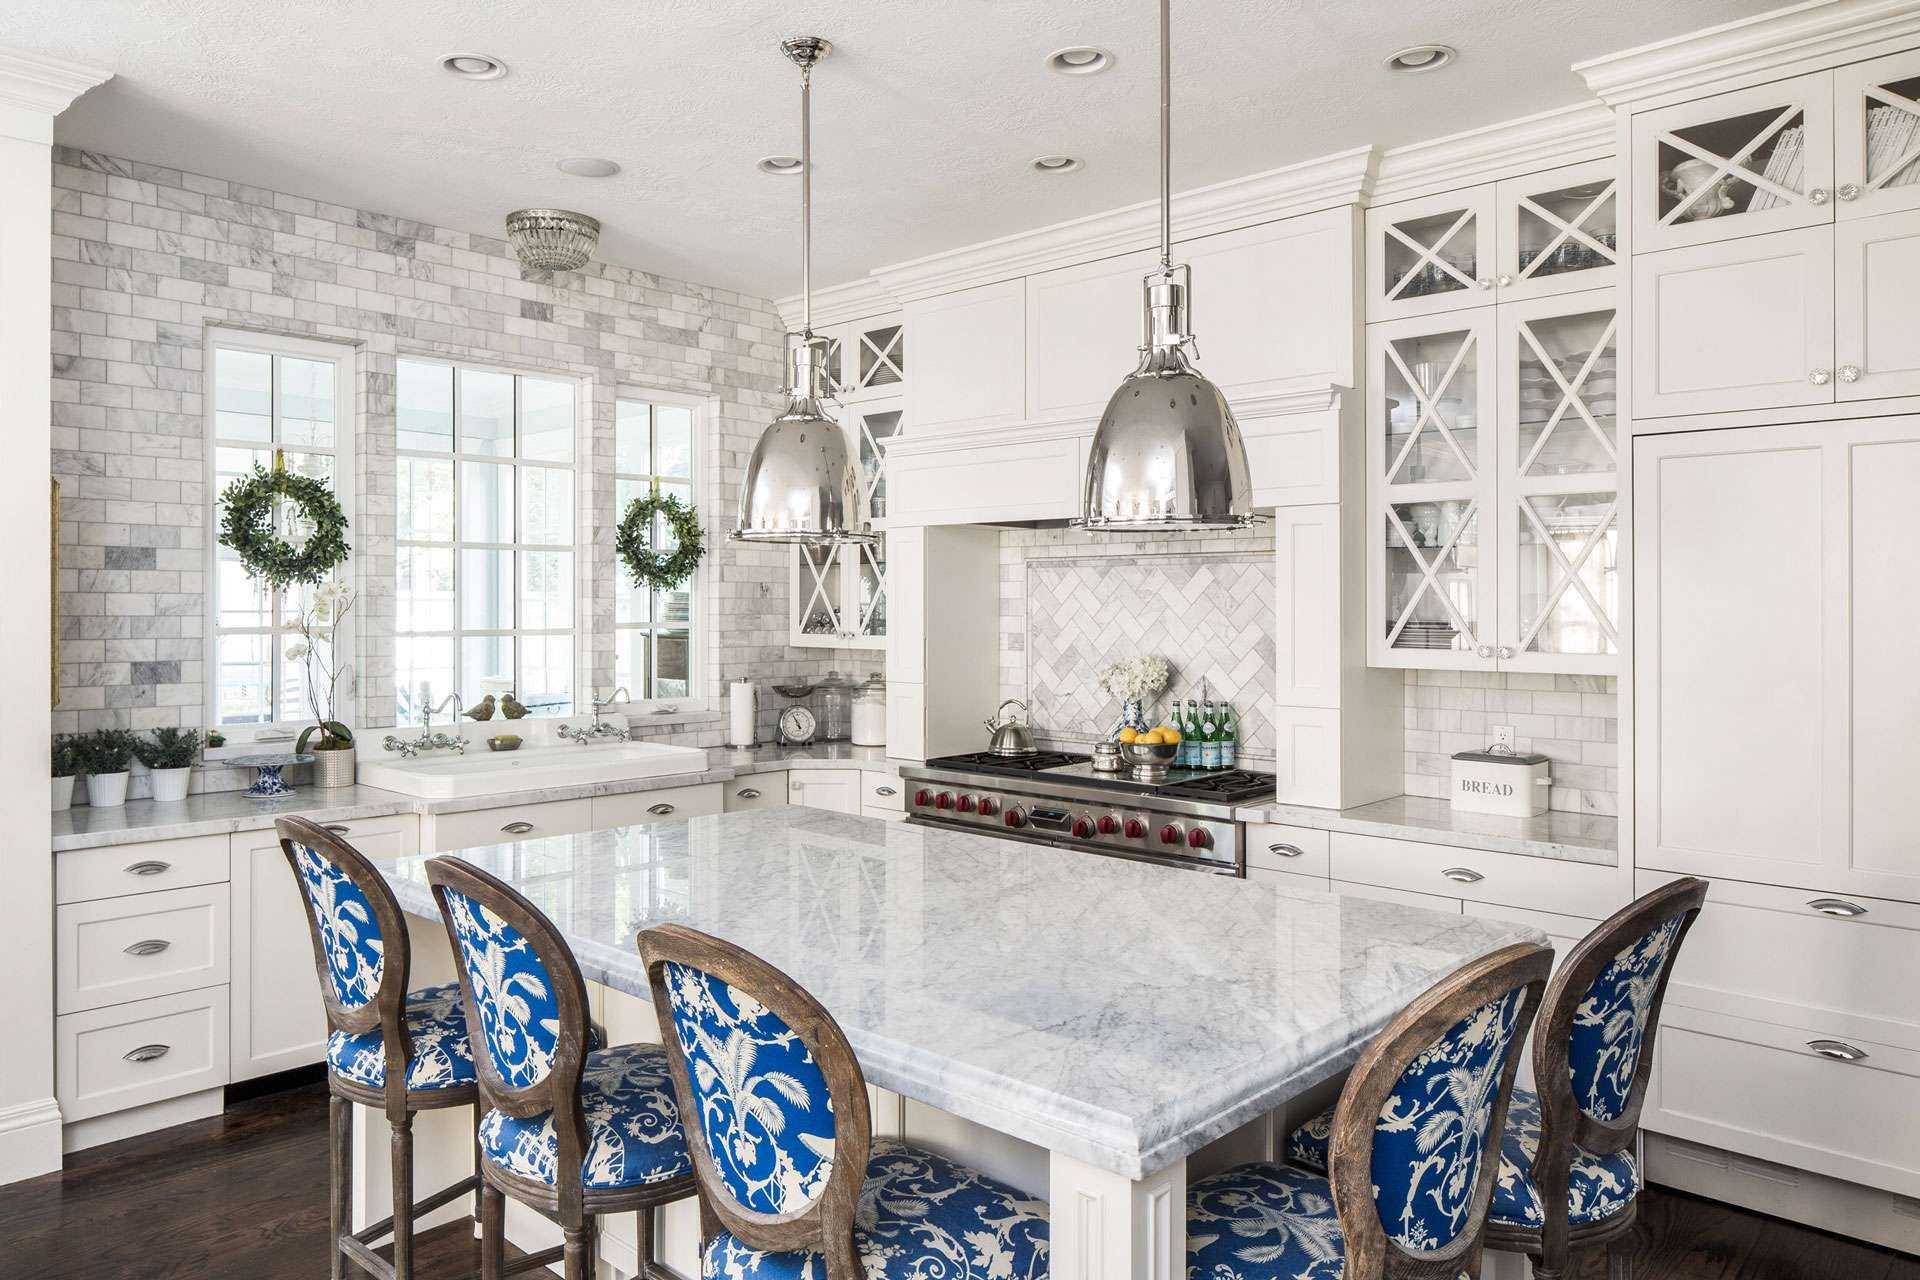 Beautiful White Kitchens House Of Hargrove Check Out These Stunning White Kitchens Full Of Inspiration Kitchen Remodel Elegant Kitchens Classic Kitchens